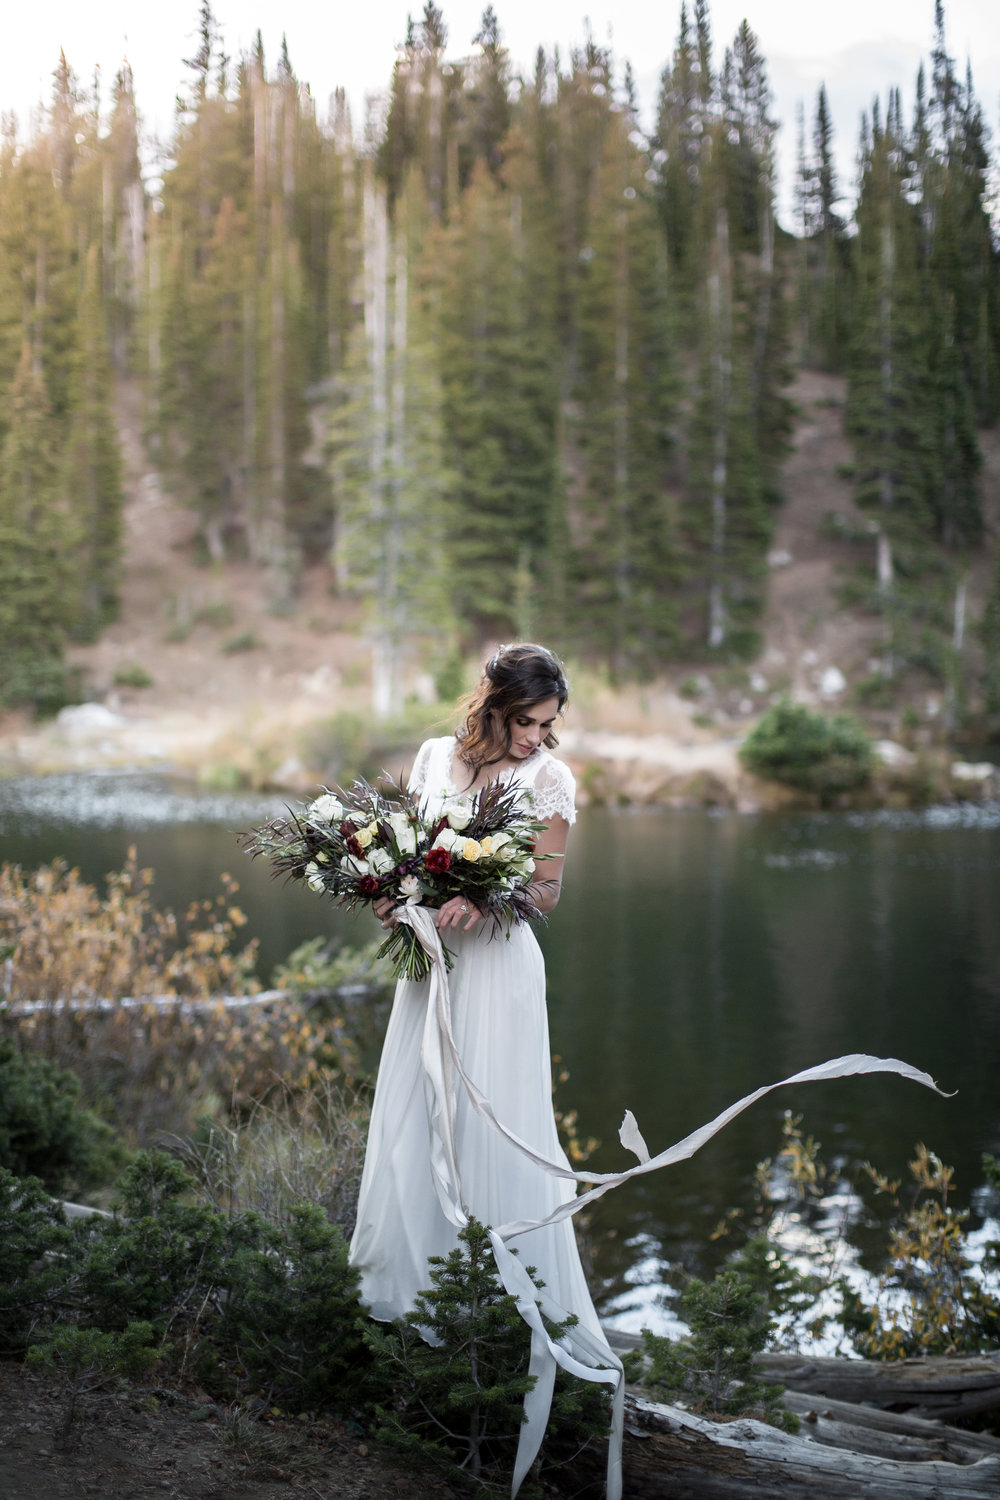 UtahValleyBrideShootTR2016 (49 of 110).jpg